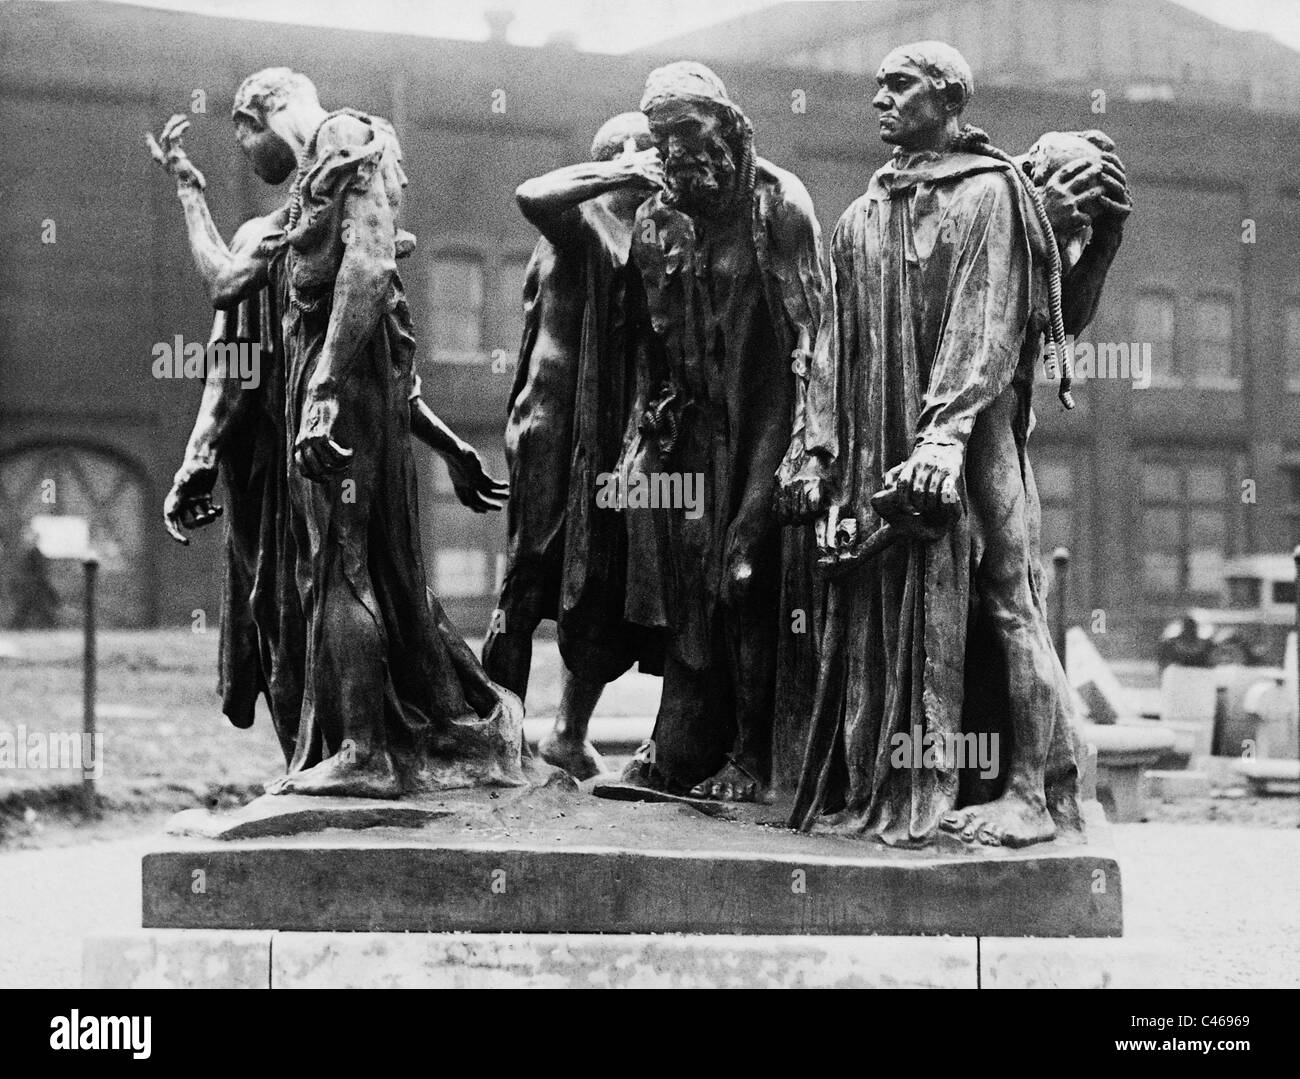 Sculpture 'The citizens of Calais' by Auguste Rodin, 1929 - Stock Image